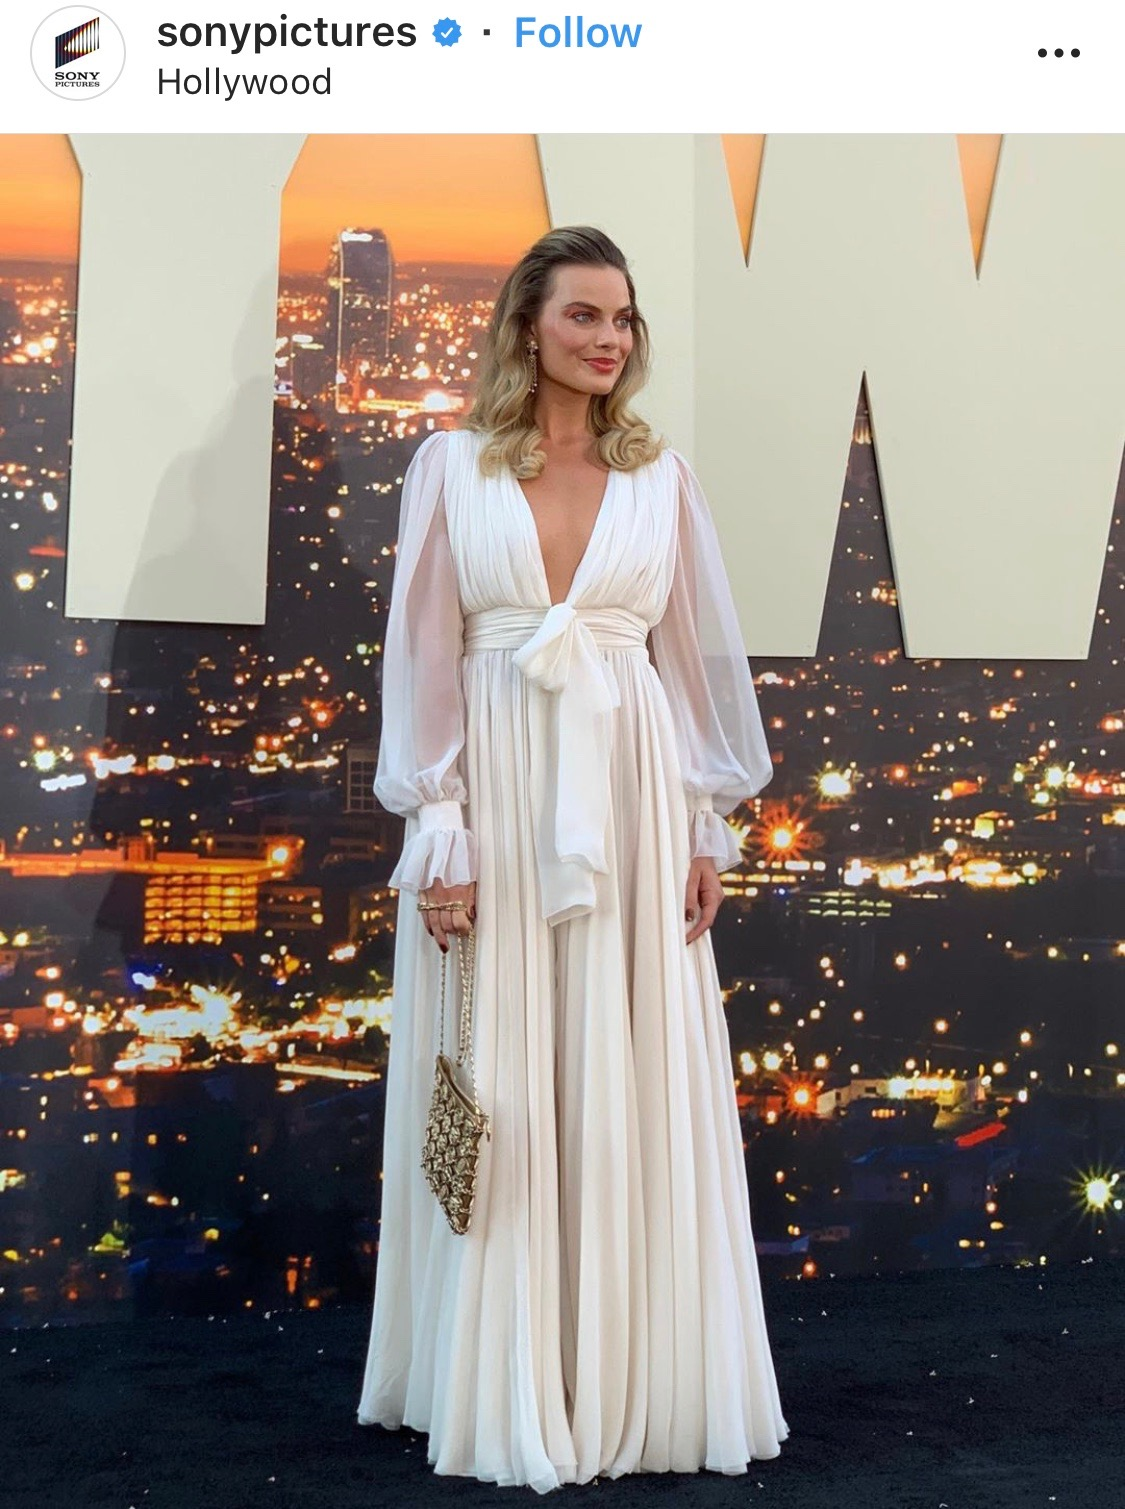 Margot-Robbie-in-Chanel-once-upoon-a-time-in-holywood-premiere.jpeg